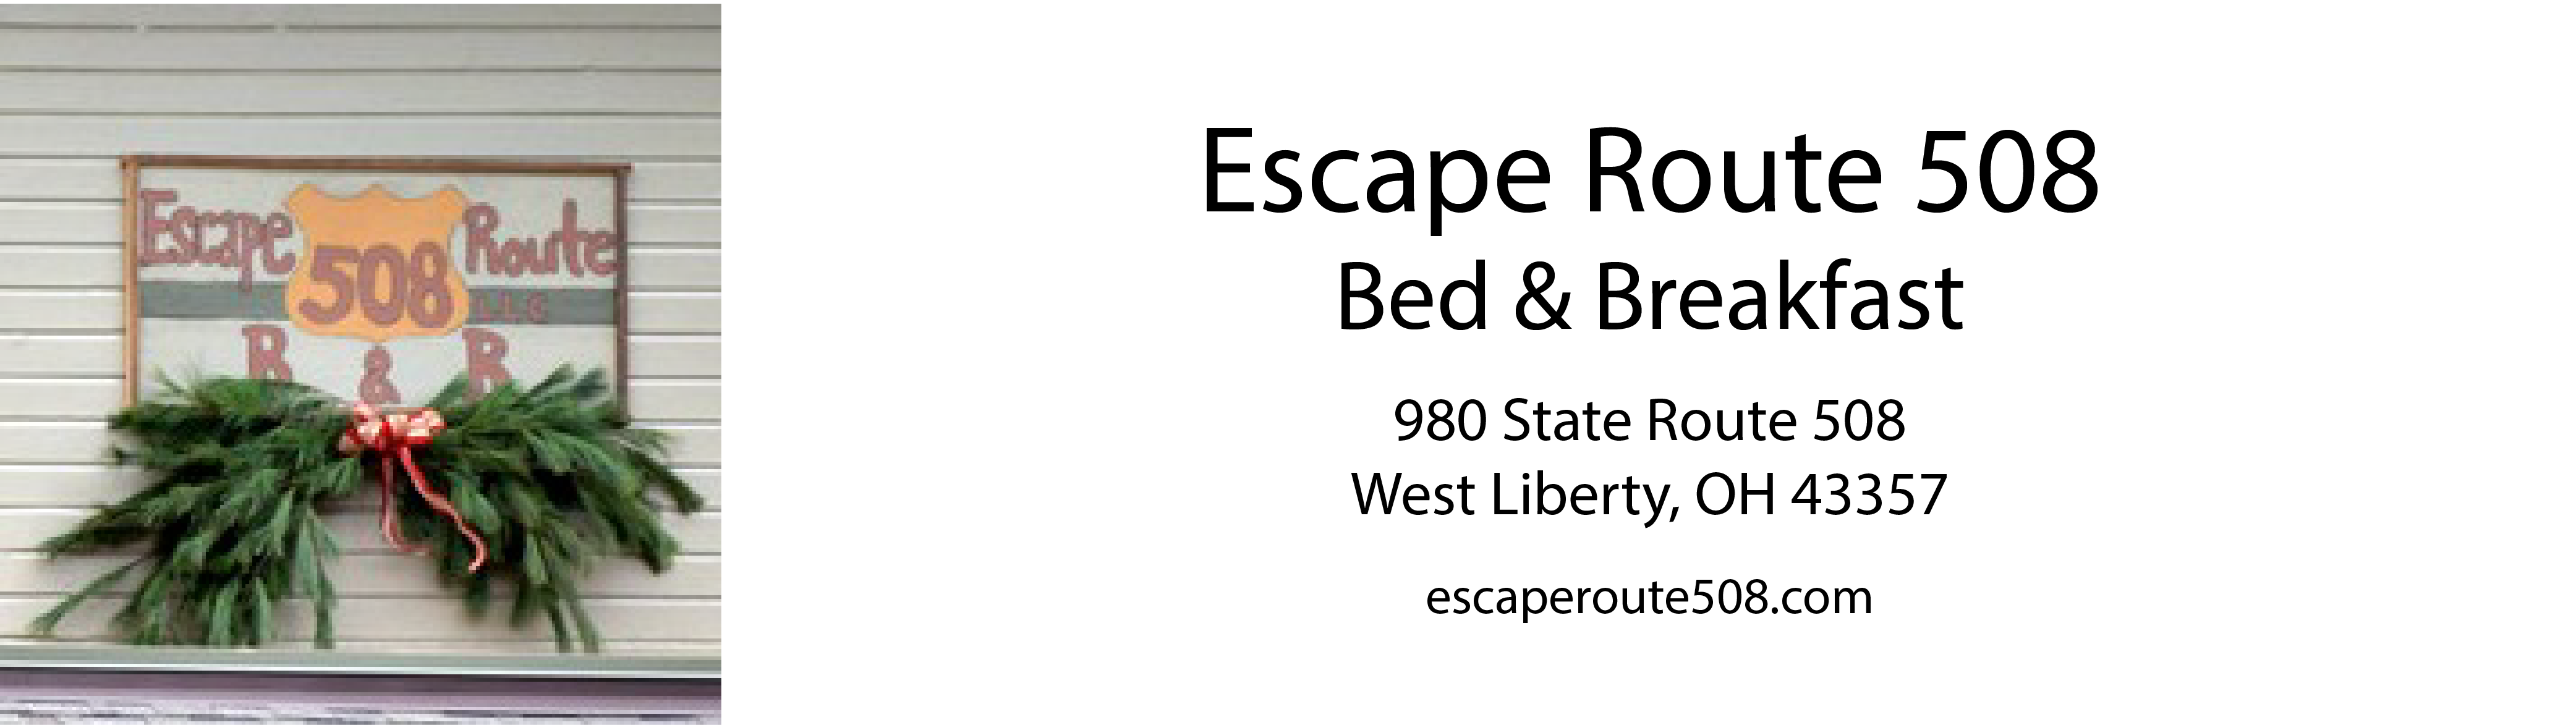 Escape Route 508 Bed and Breakfast